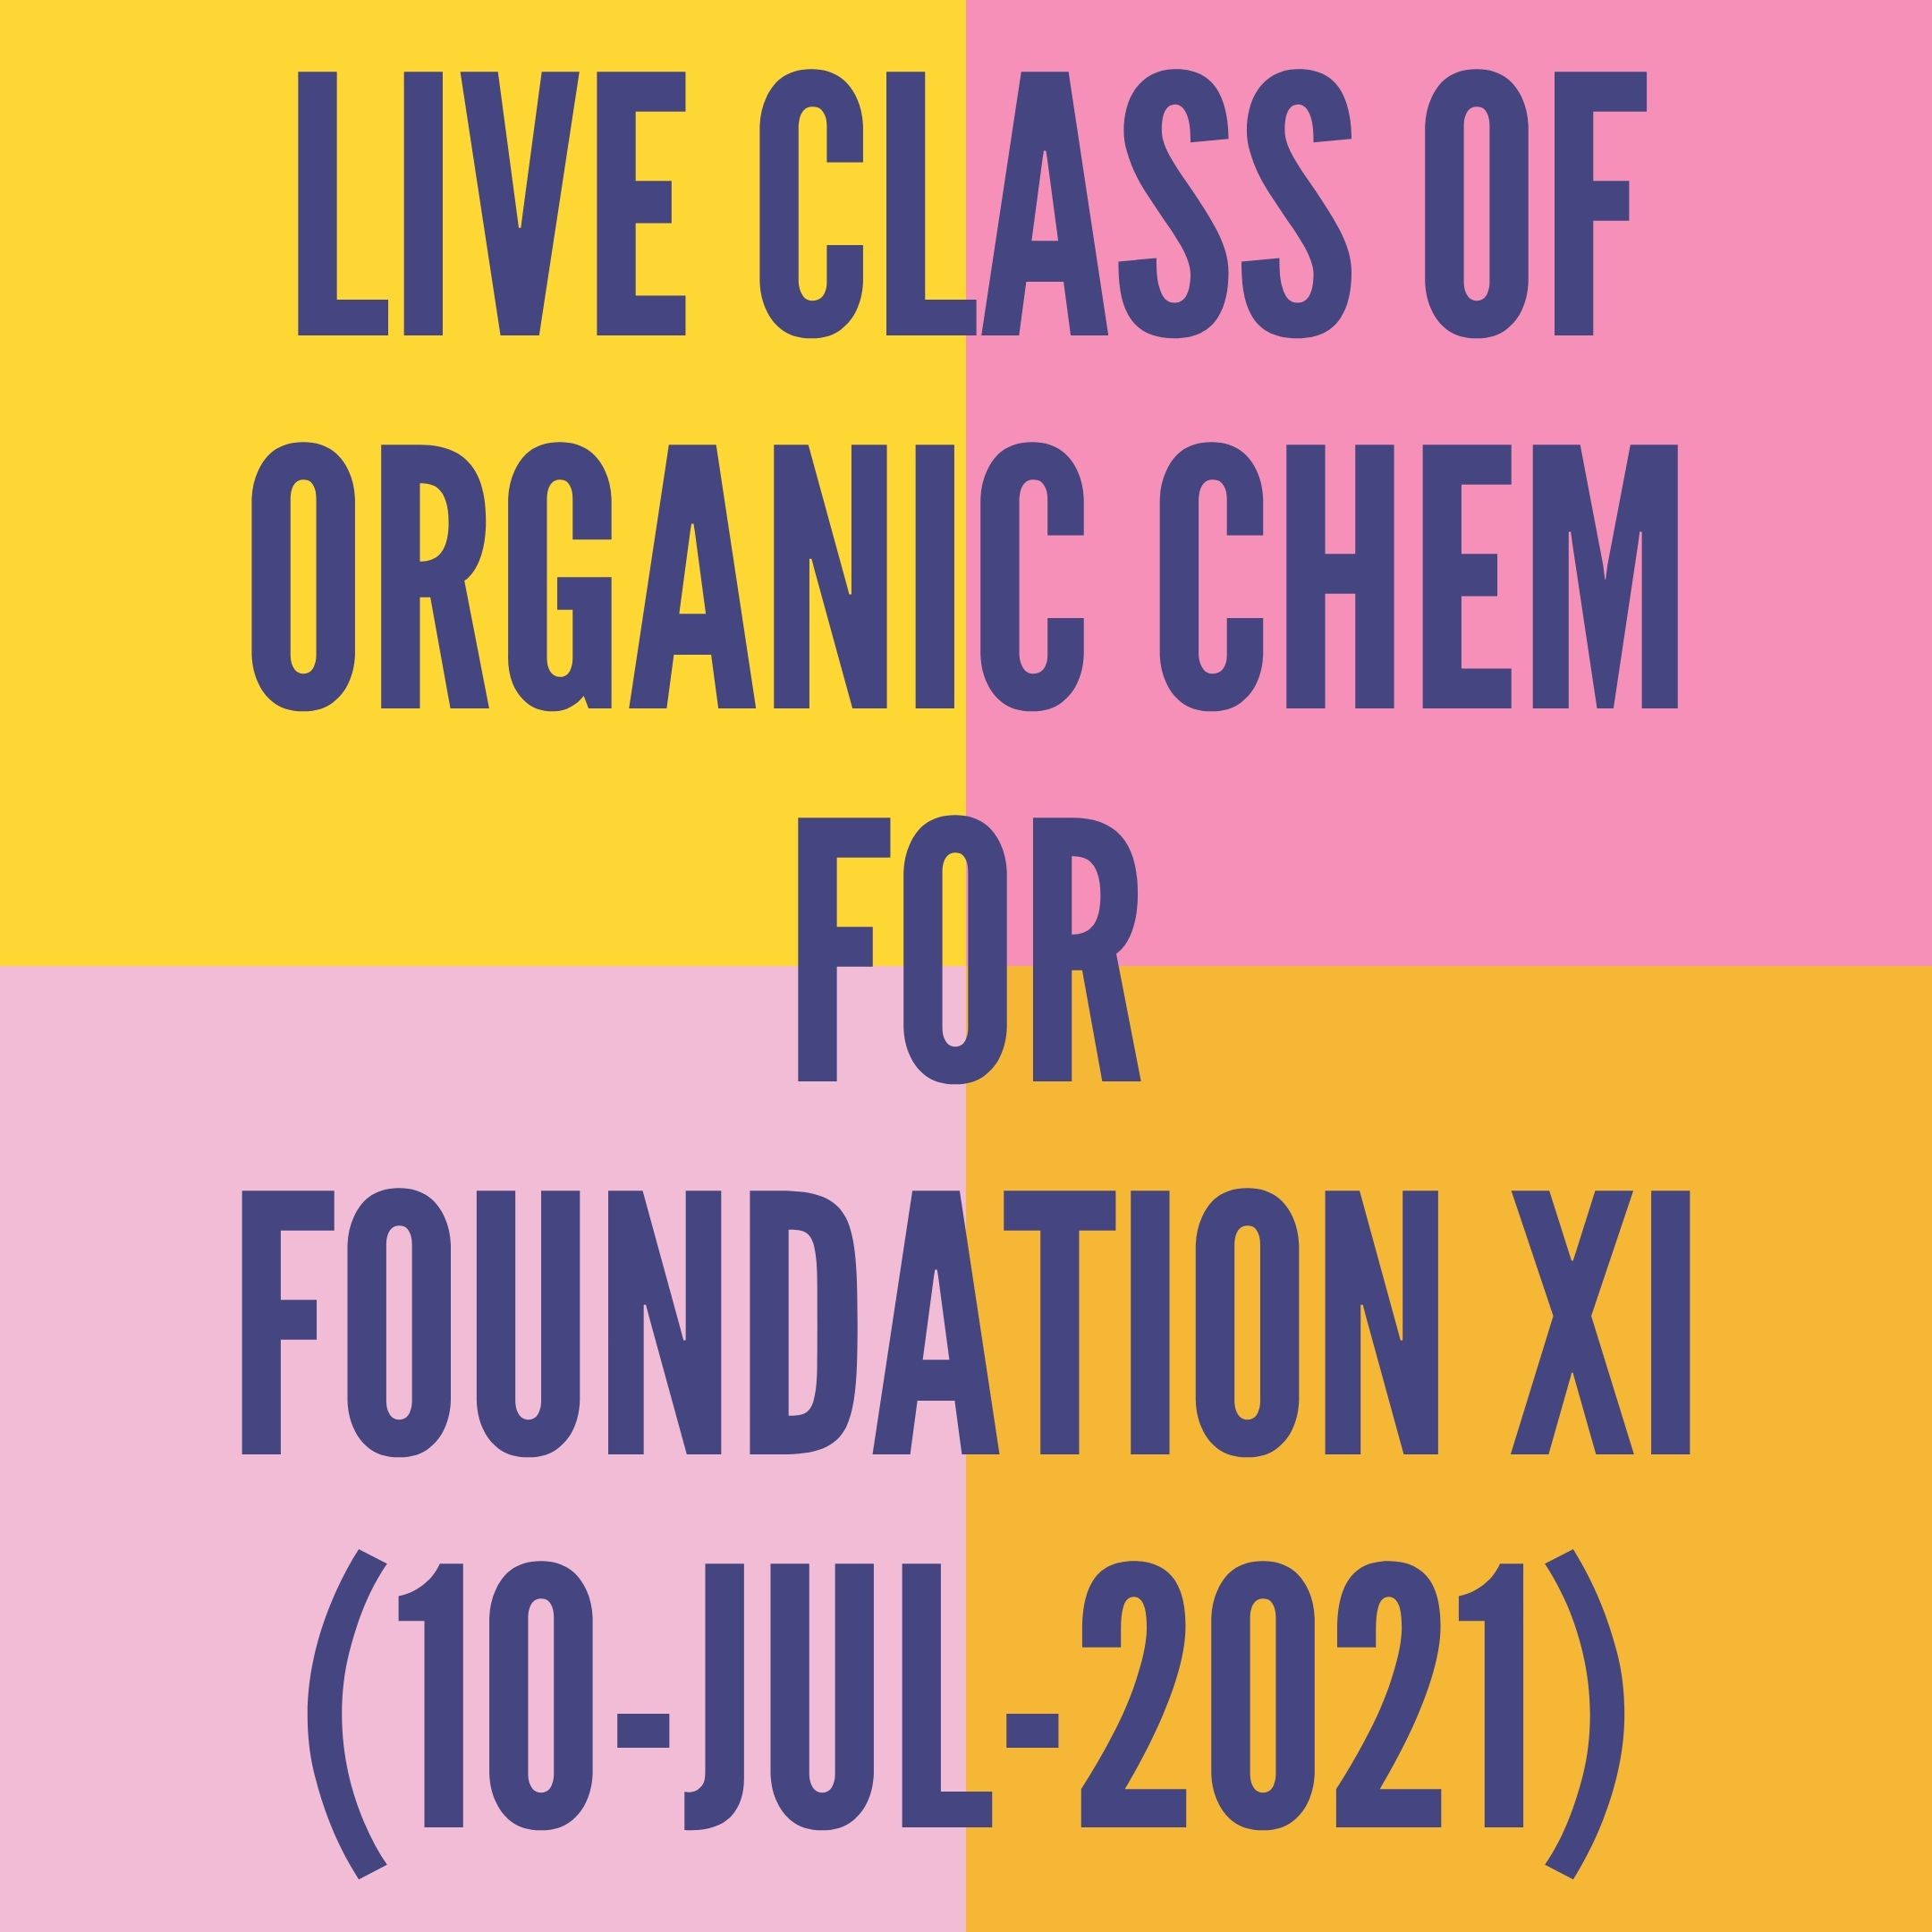 LIVE CLASS OF ORGANIC CHEMISTRY FOR FOUNDATION XI (10-JUL-2021) NOMENCLATURE